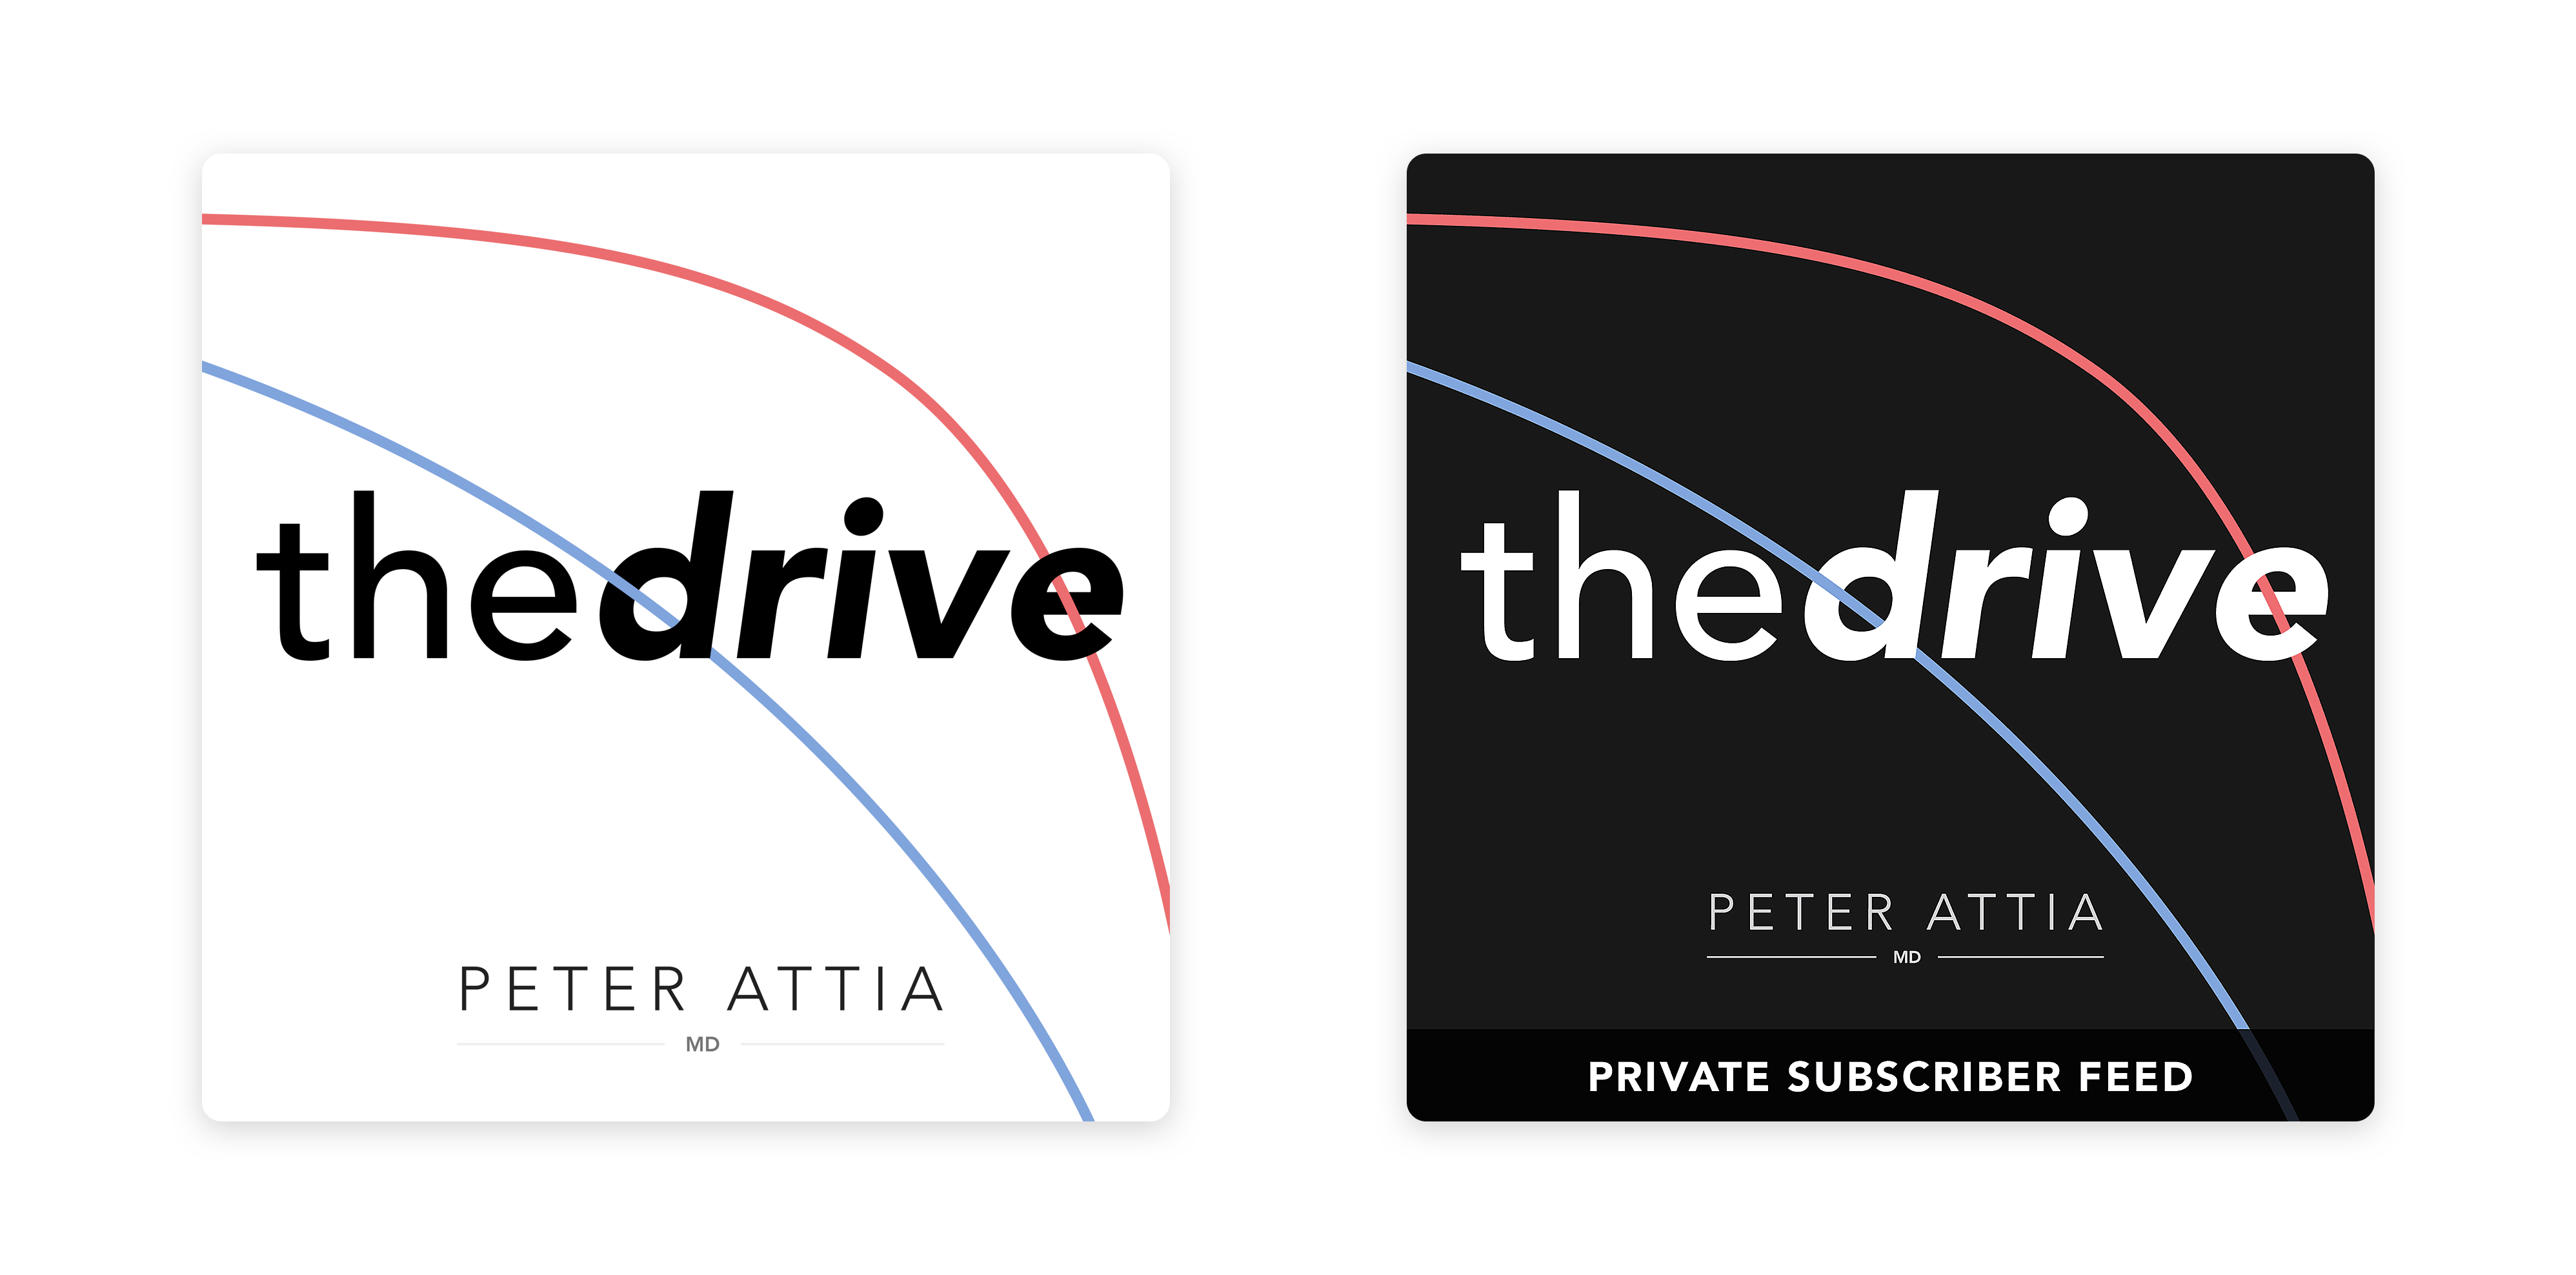 """Podcast Artwork for """"The Drive"""" podcast"""